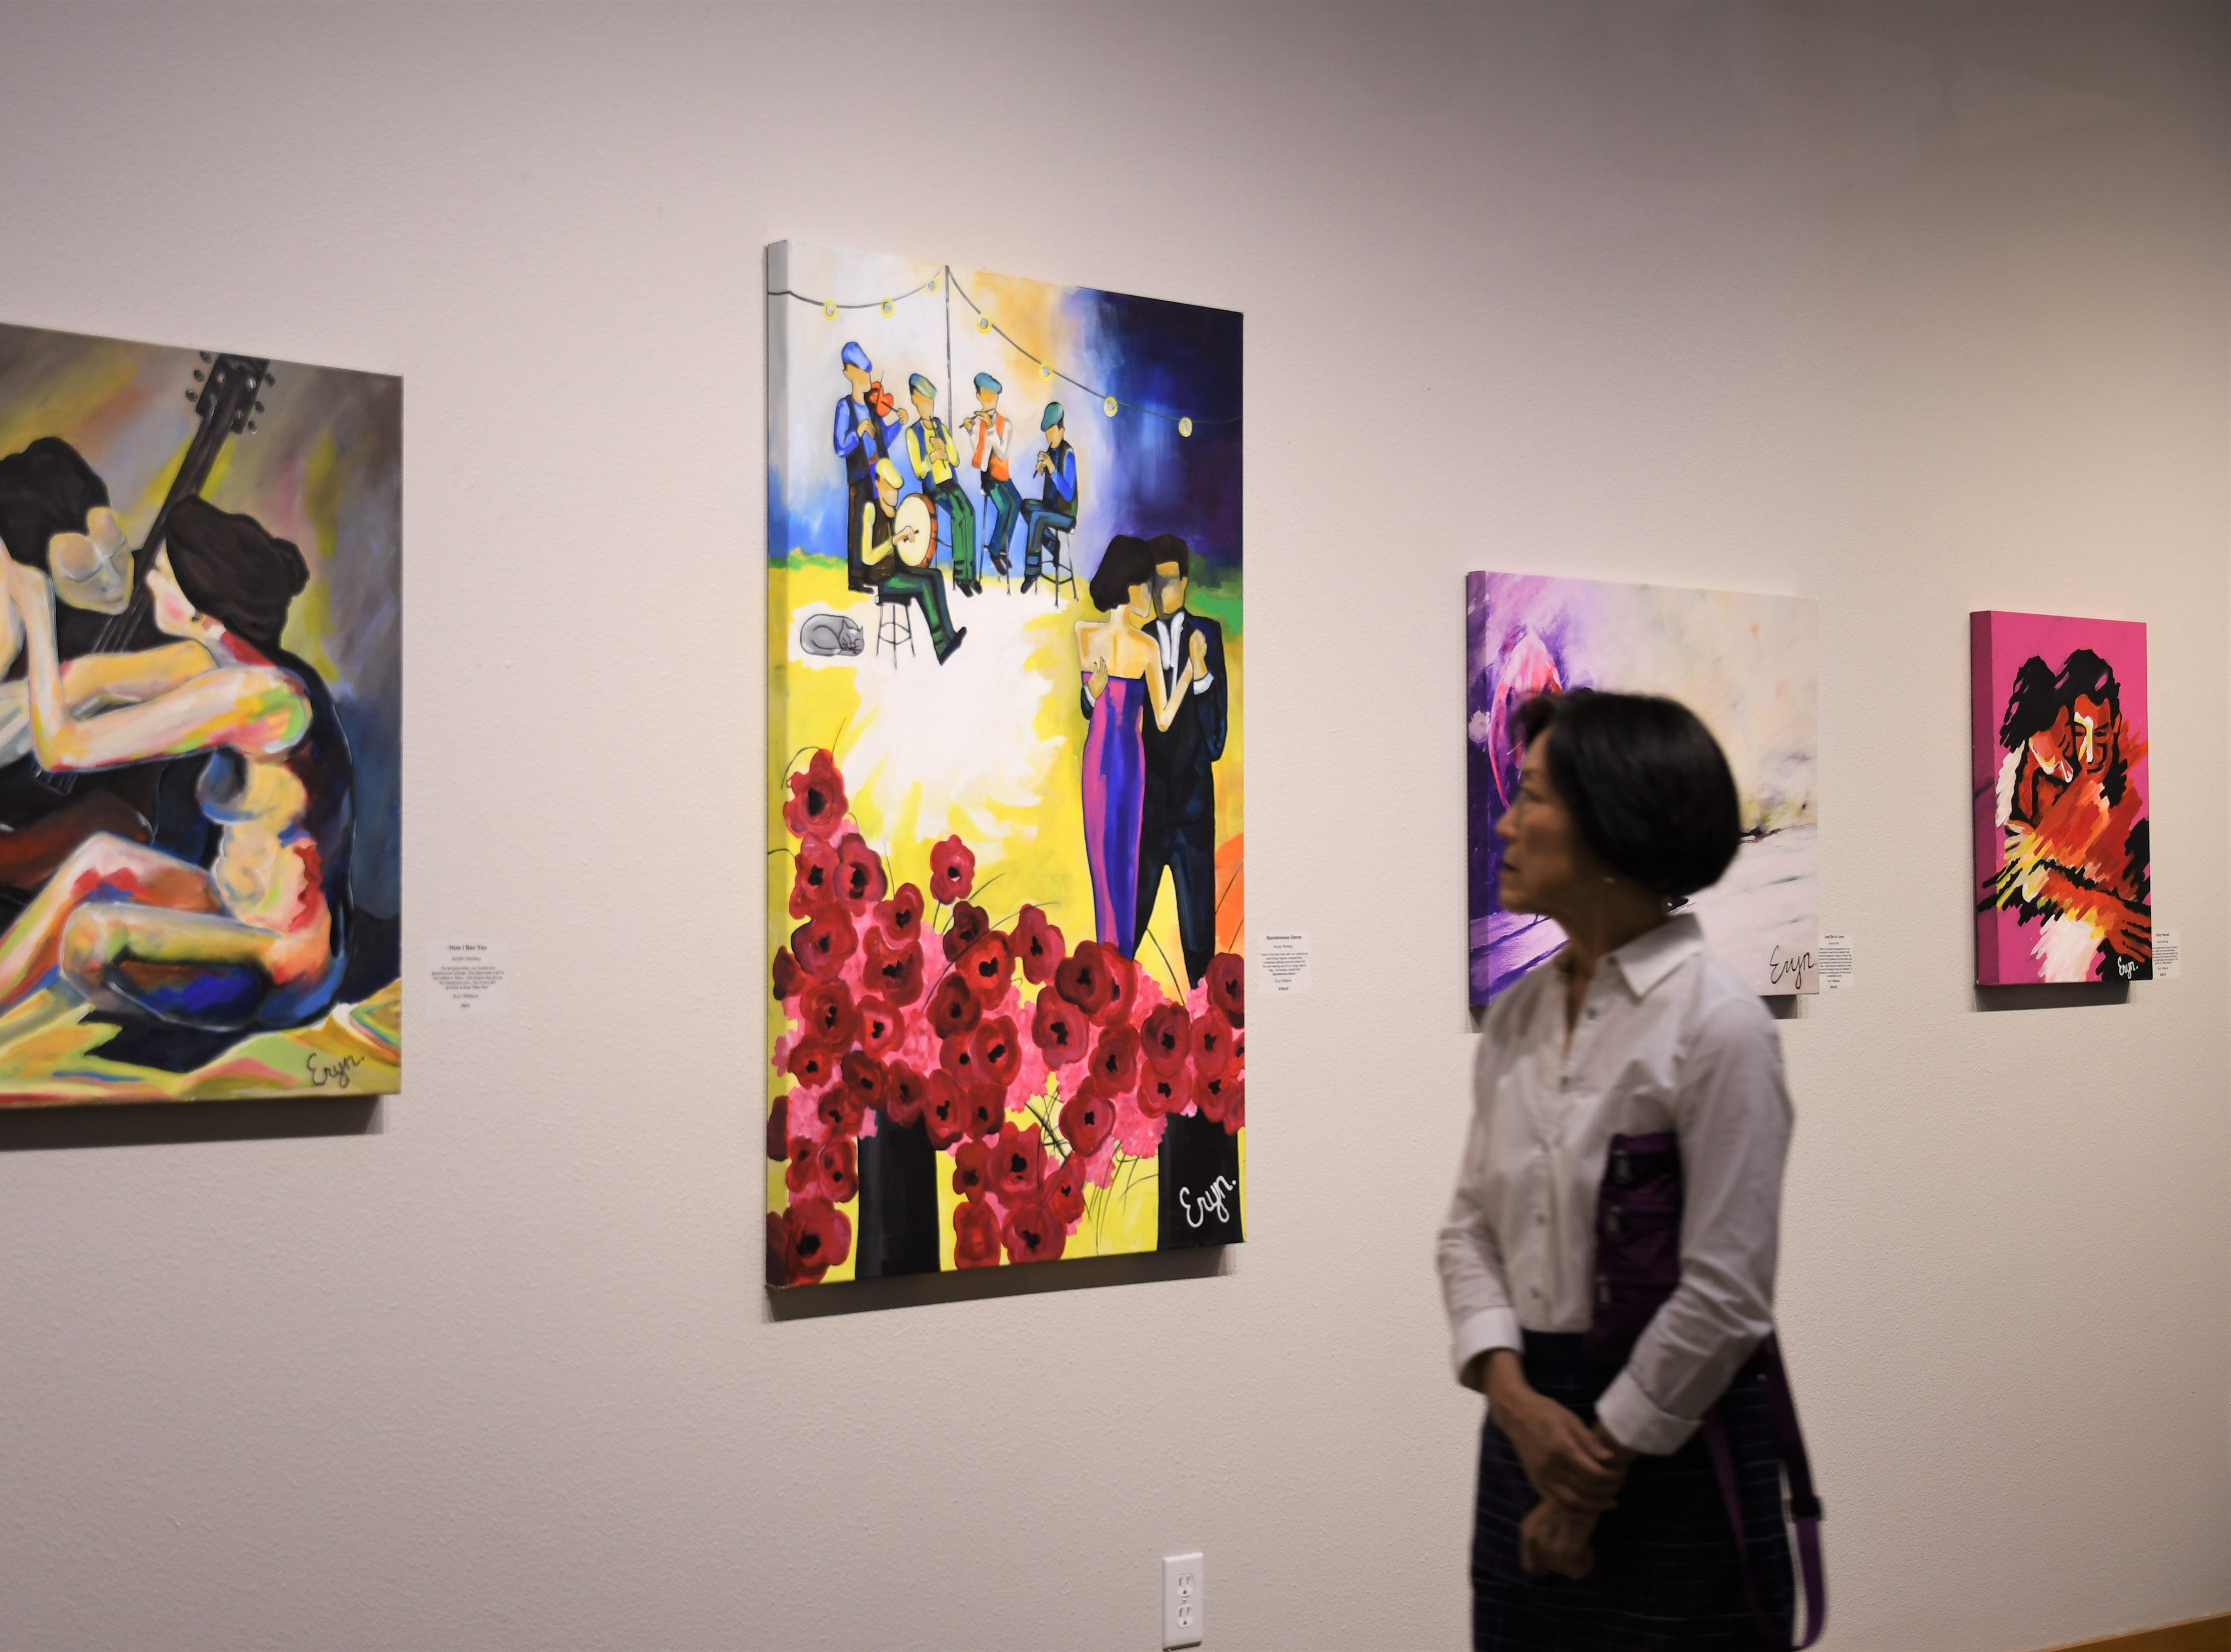 Mt. Whitney-graduate Eryn Williams' paintings are showing at Arts Visalia through Sept. 28